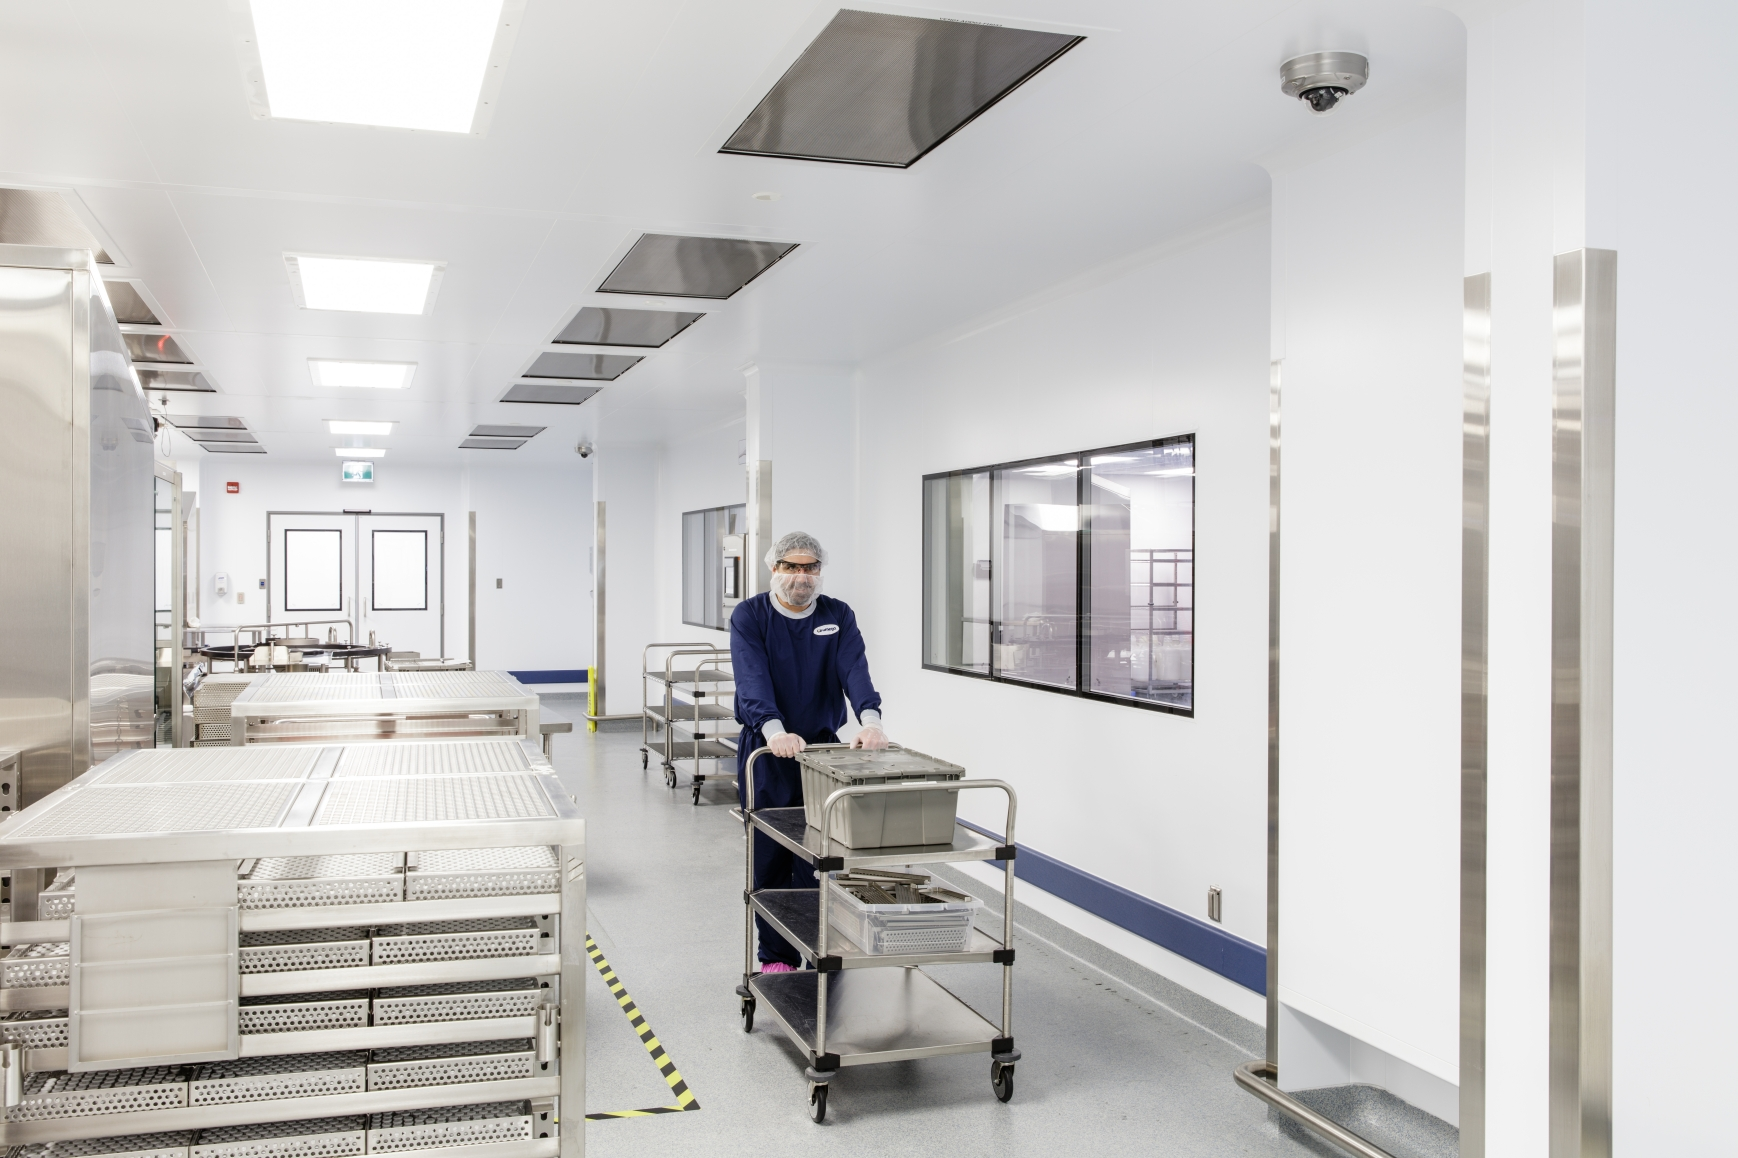 Preventative Cleanroom Maintenance: Protecting Your Investment and Reducing Risk